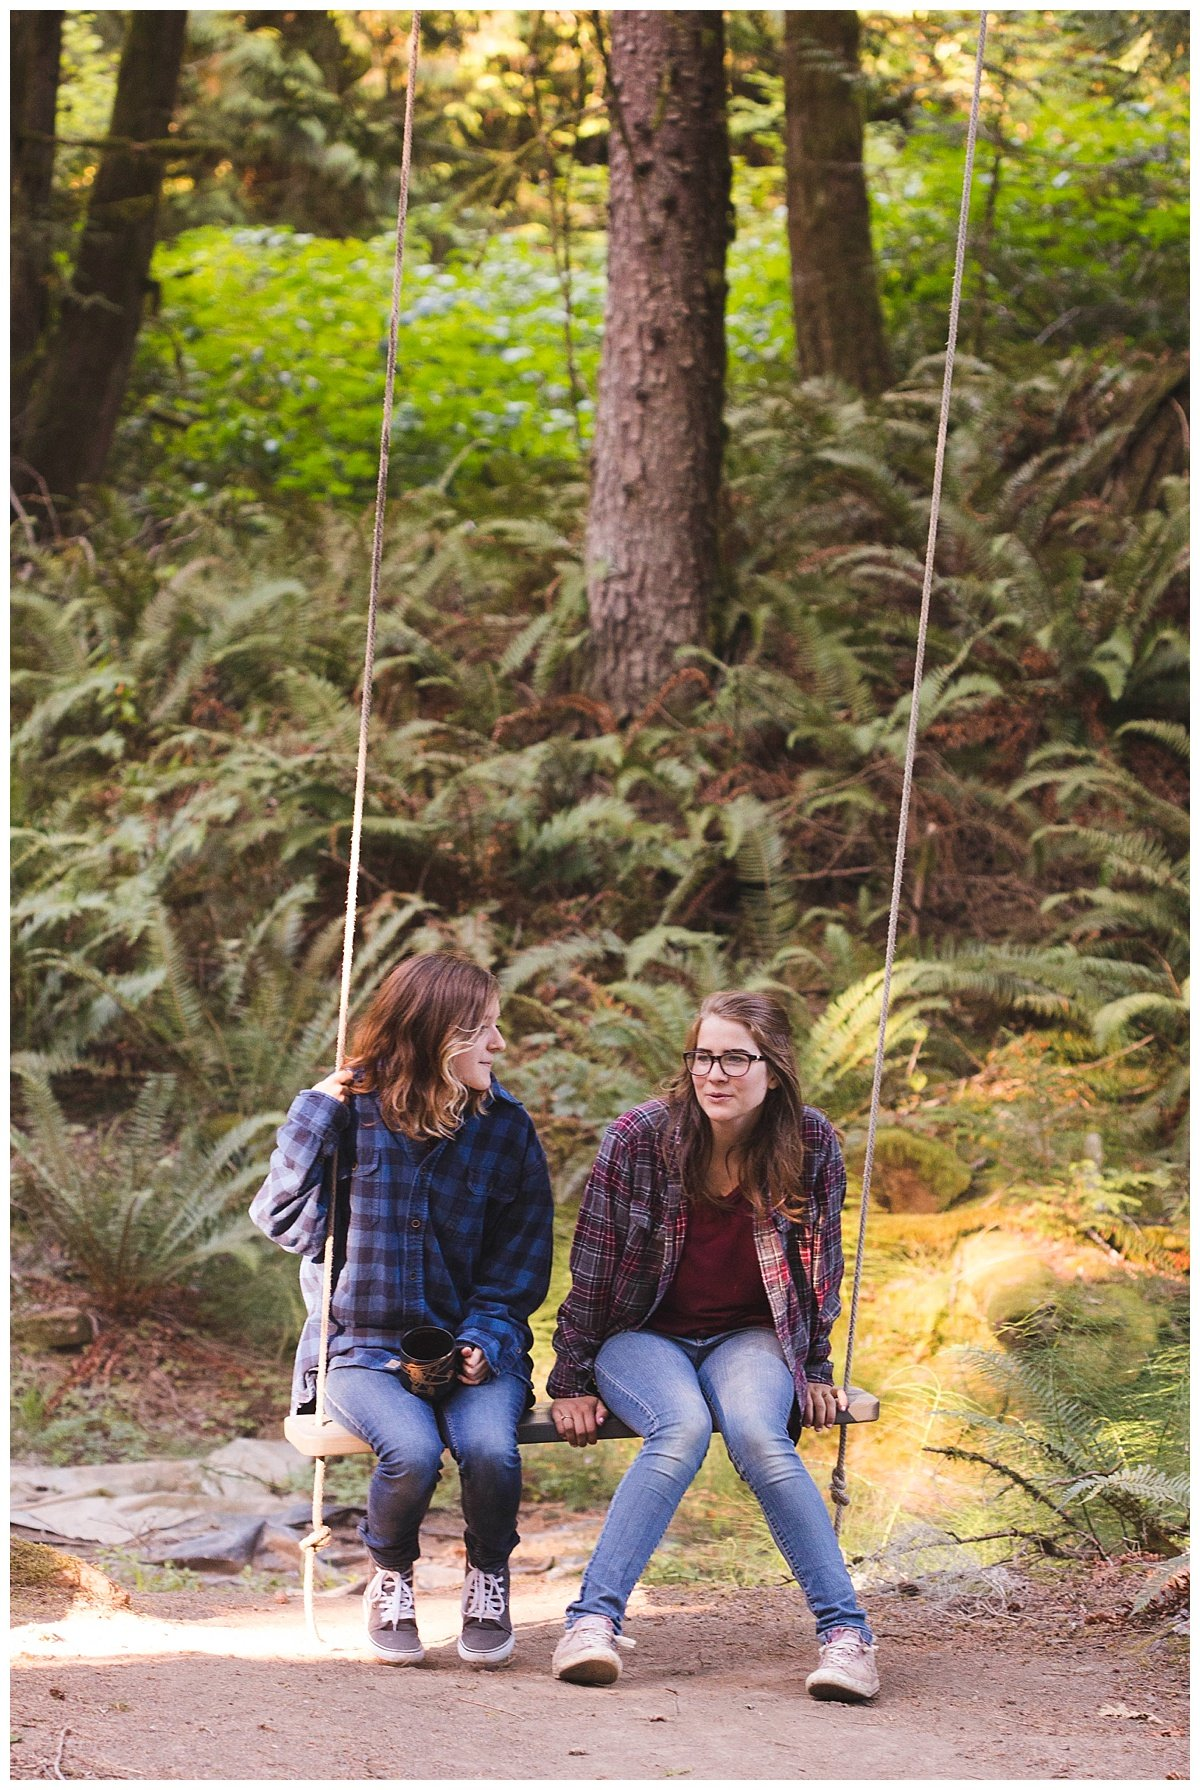 Where to glamp in Whatcom County